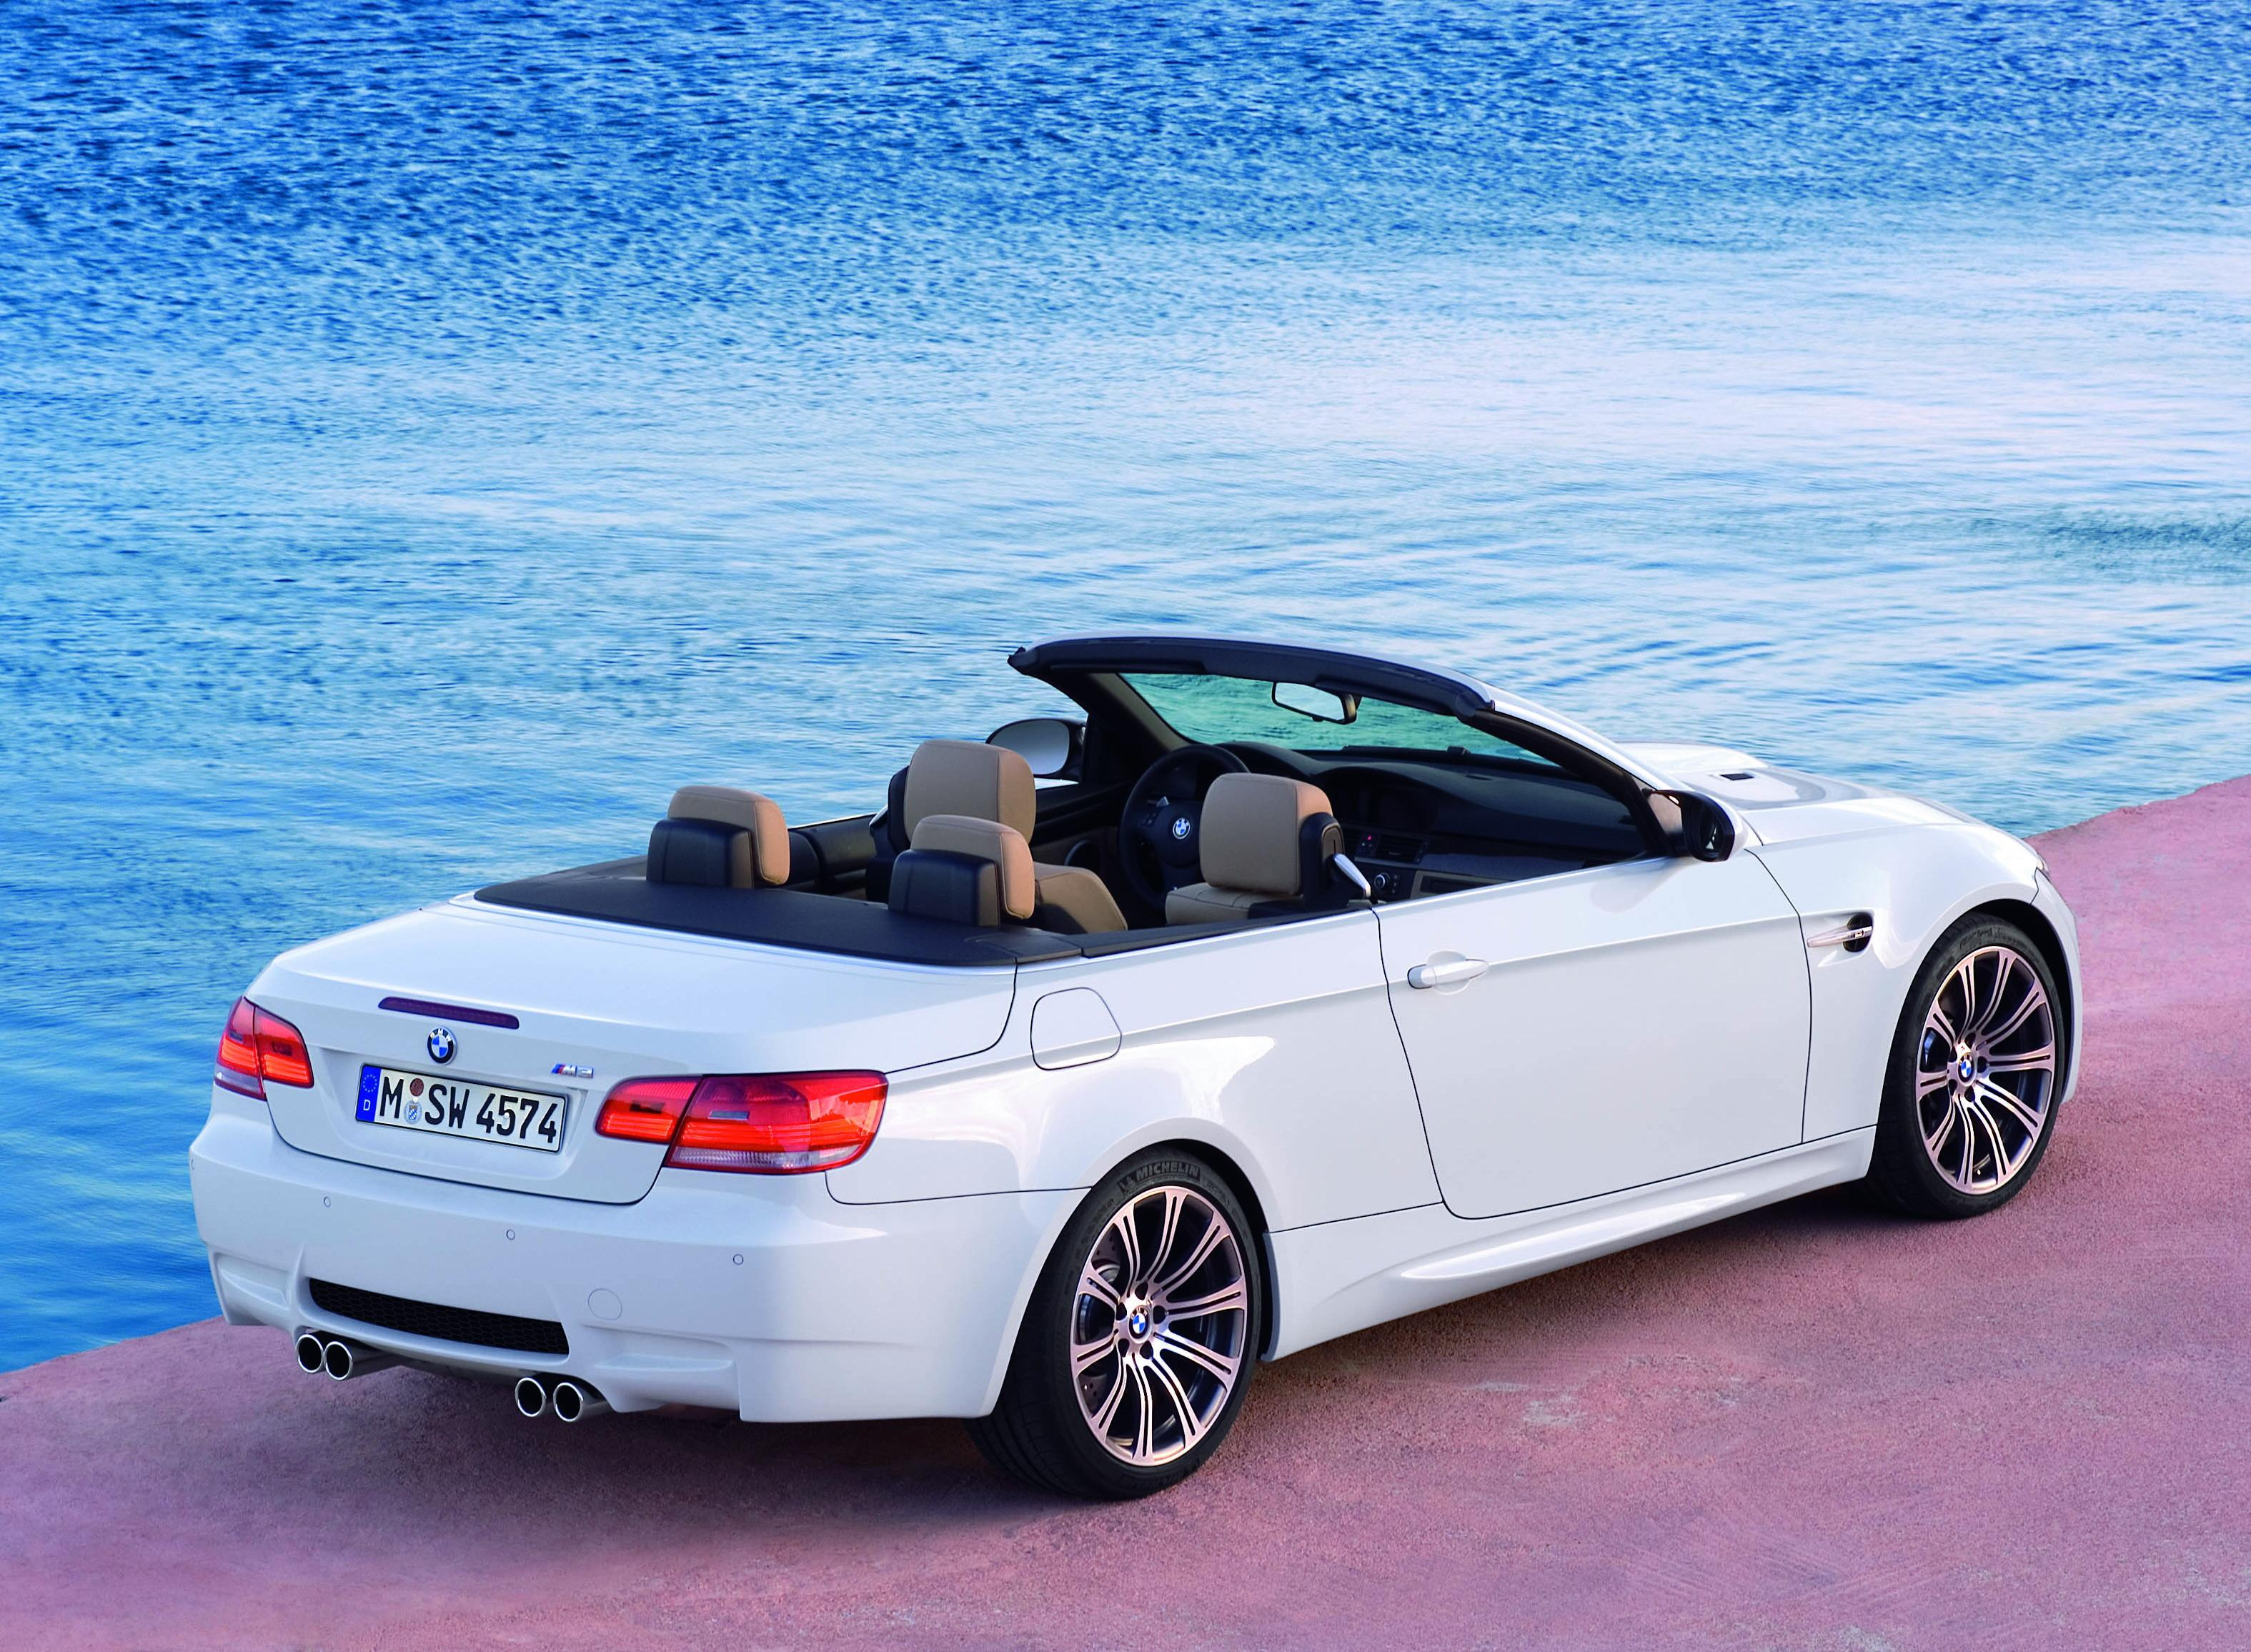 2009 bmw m3 convertible review gallery 226611 top speed. Black Bedroom Furniture Sets. Home Design Ideas